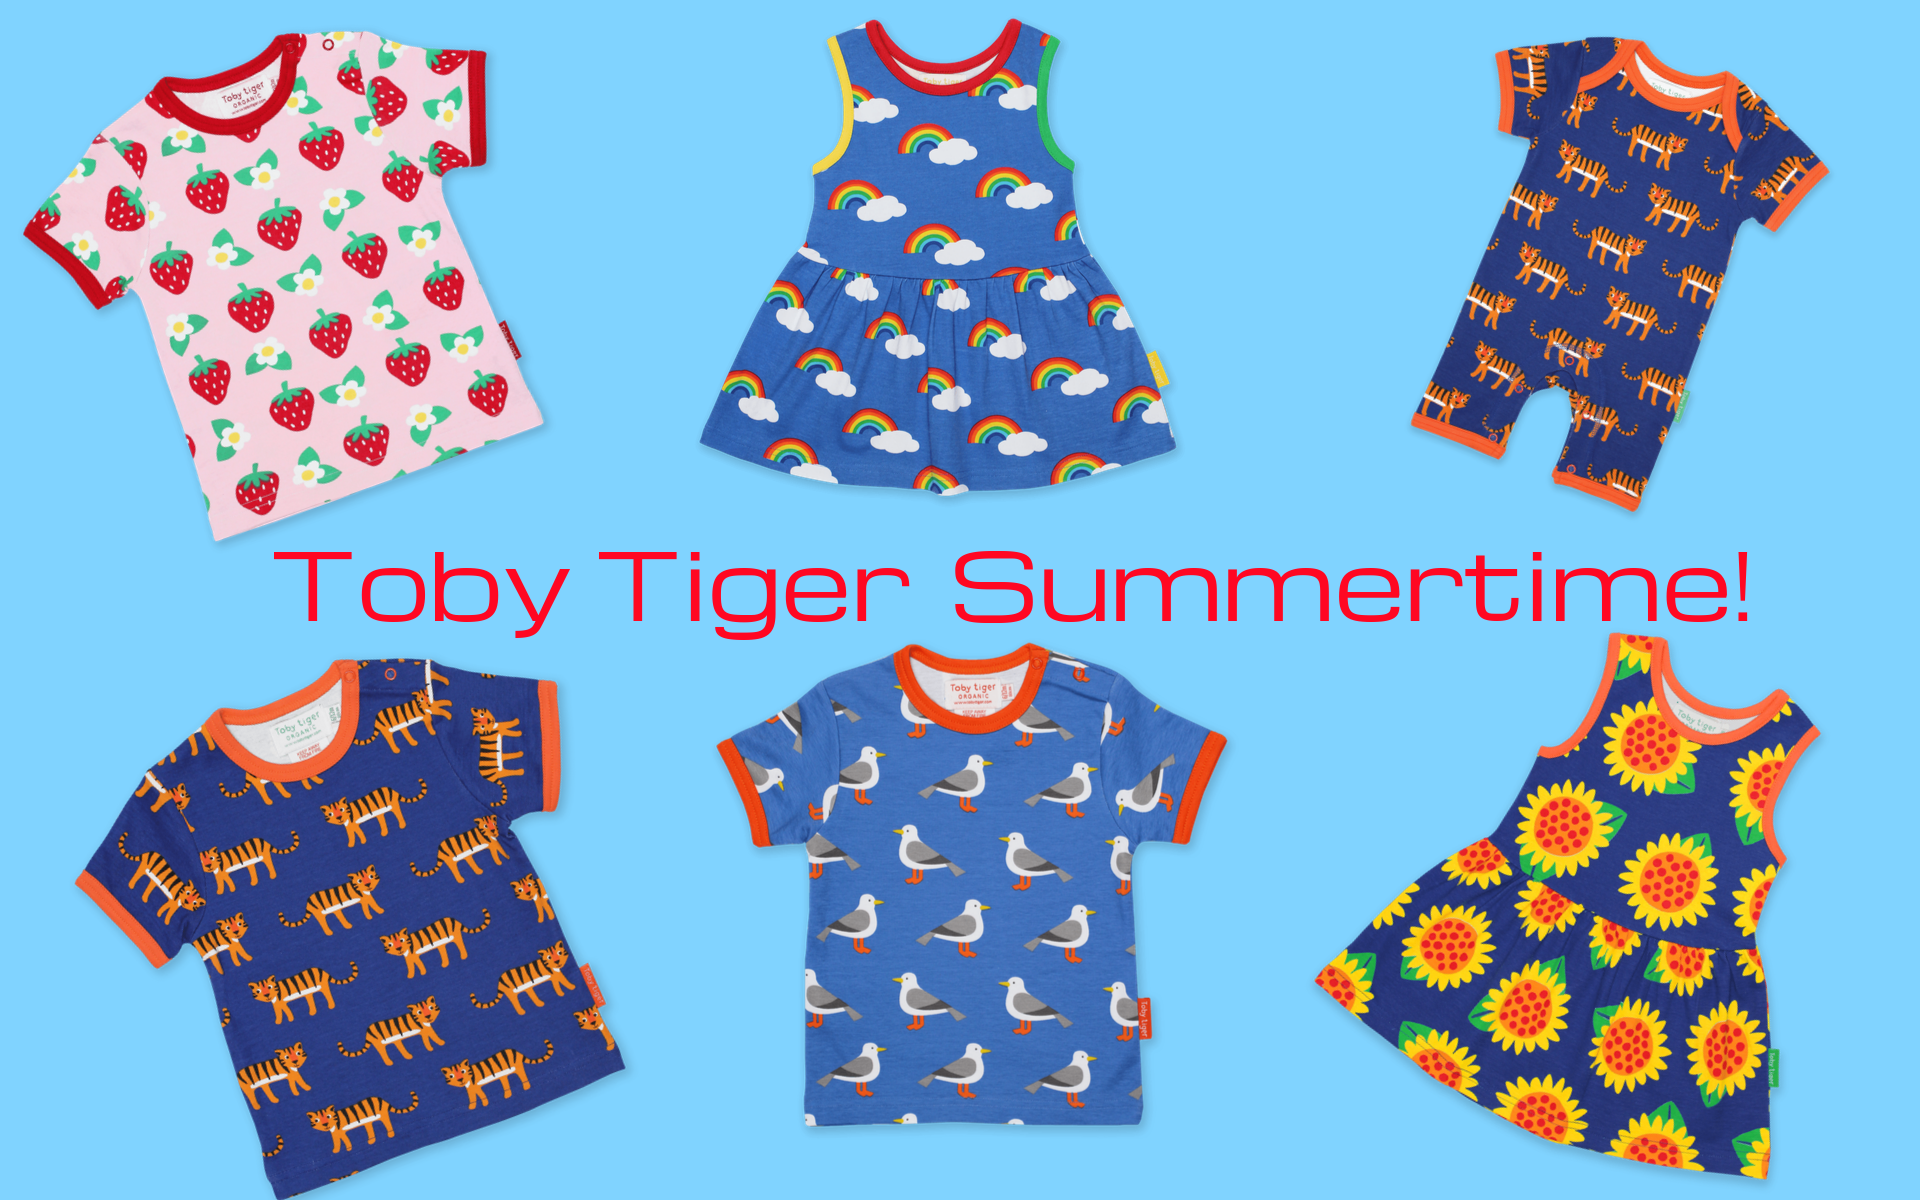 Toby Tiger organic kids clothes online at Scandi Down Under Australia